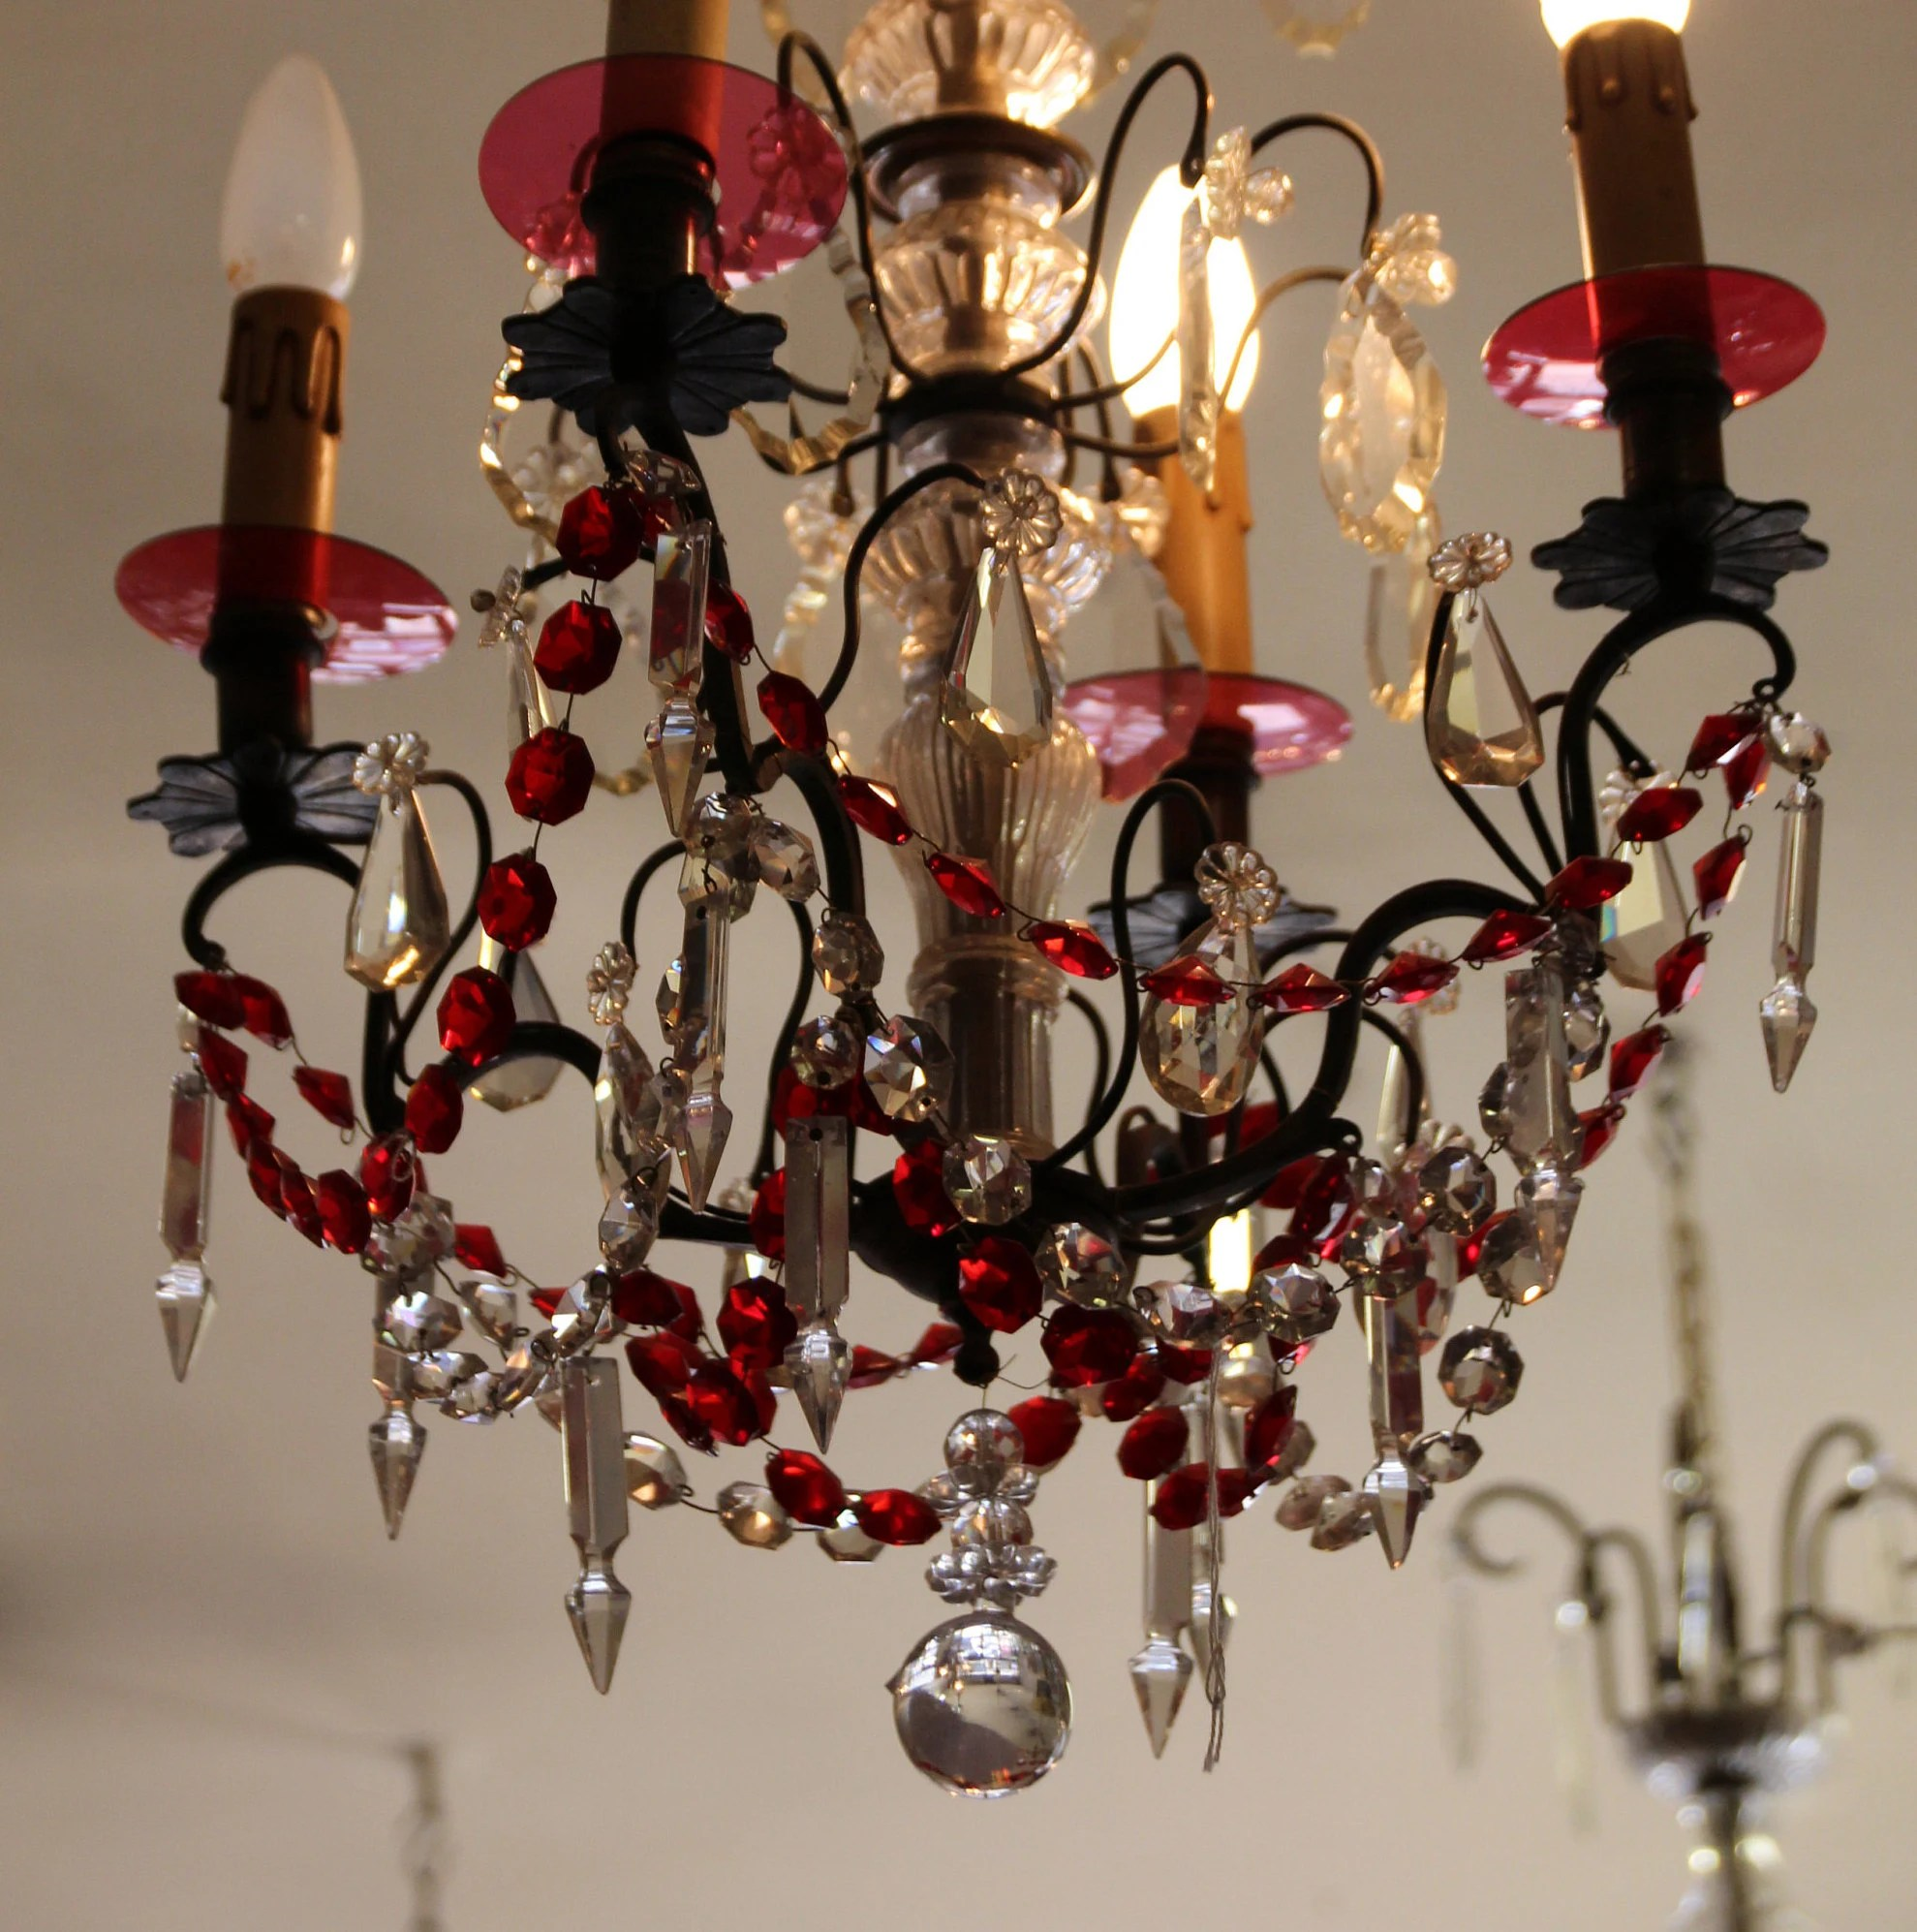 Bathroom Chandelier Lighting Red Chandelier Crystal Chandelier Bathroom Chandelier Lighting Bedroom Chandelier Ceiling Crystal Baccarat Chandelier French Antique Decor